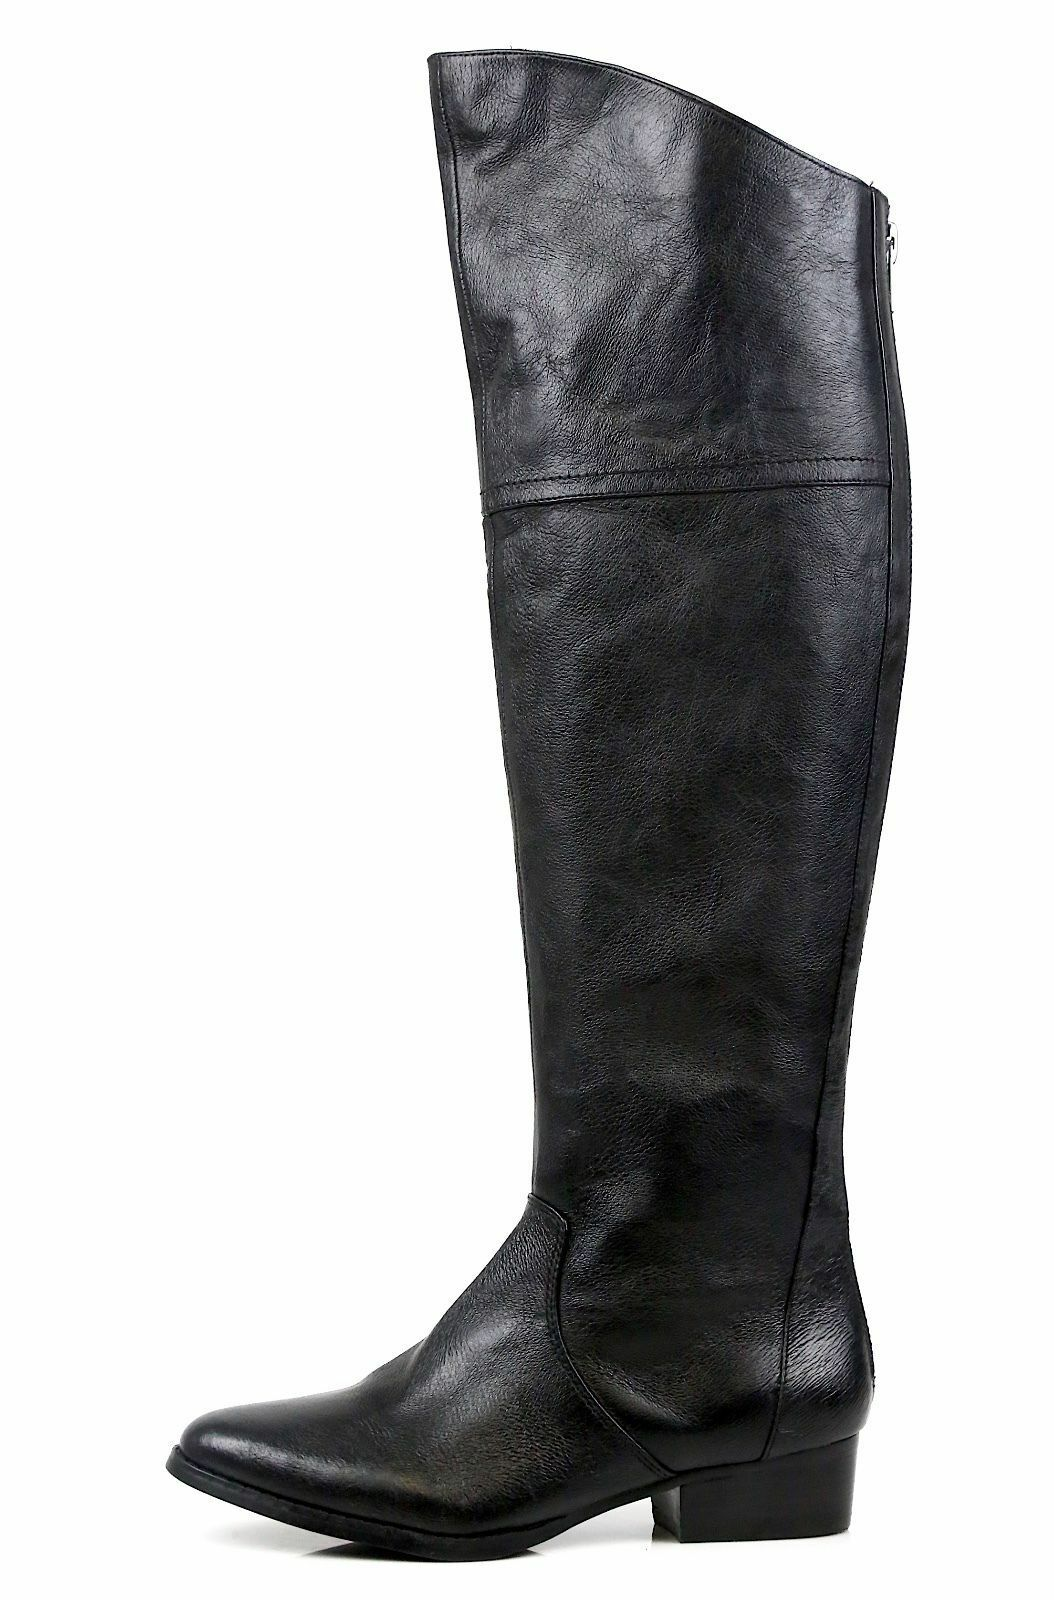 2aa81f2d575 Buy Steve Madden Koma Over The Knee Black Leather BOOTS Size 5.5 M ...